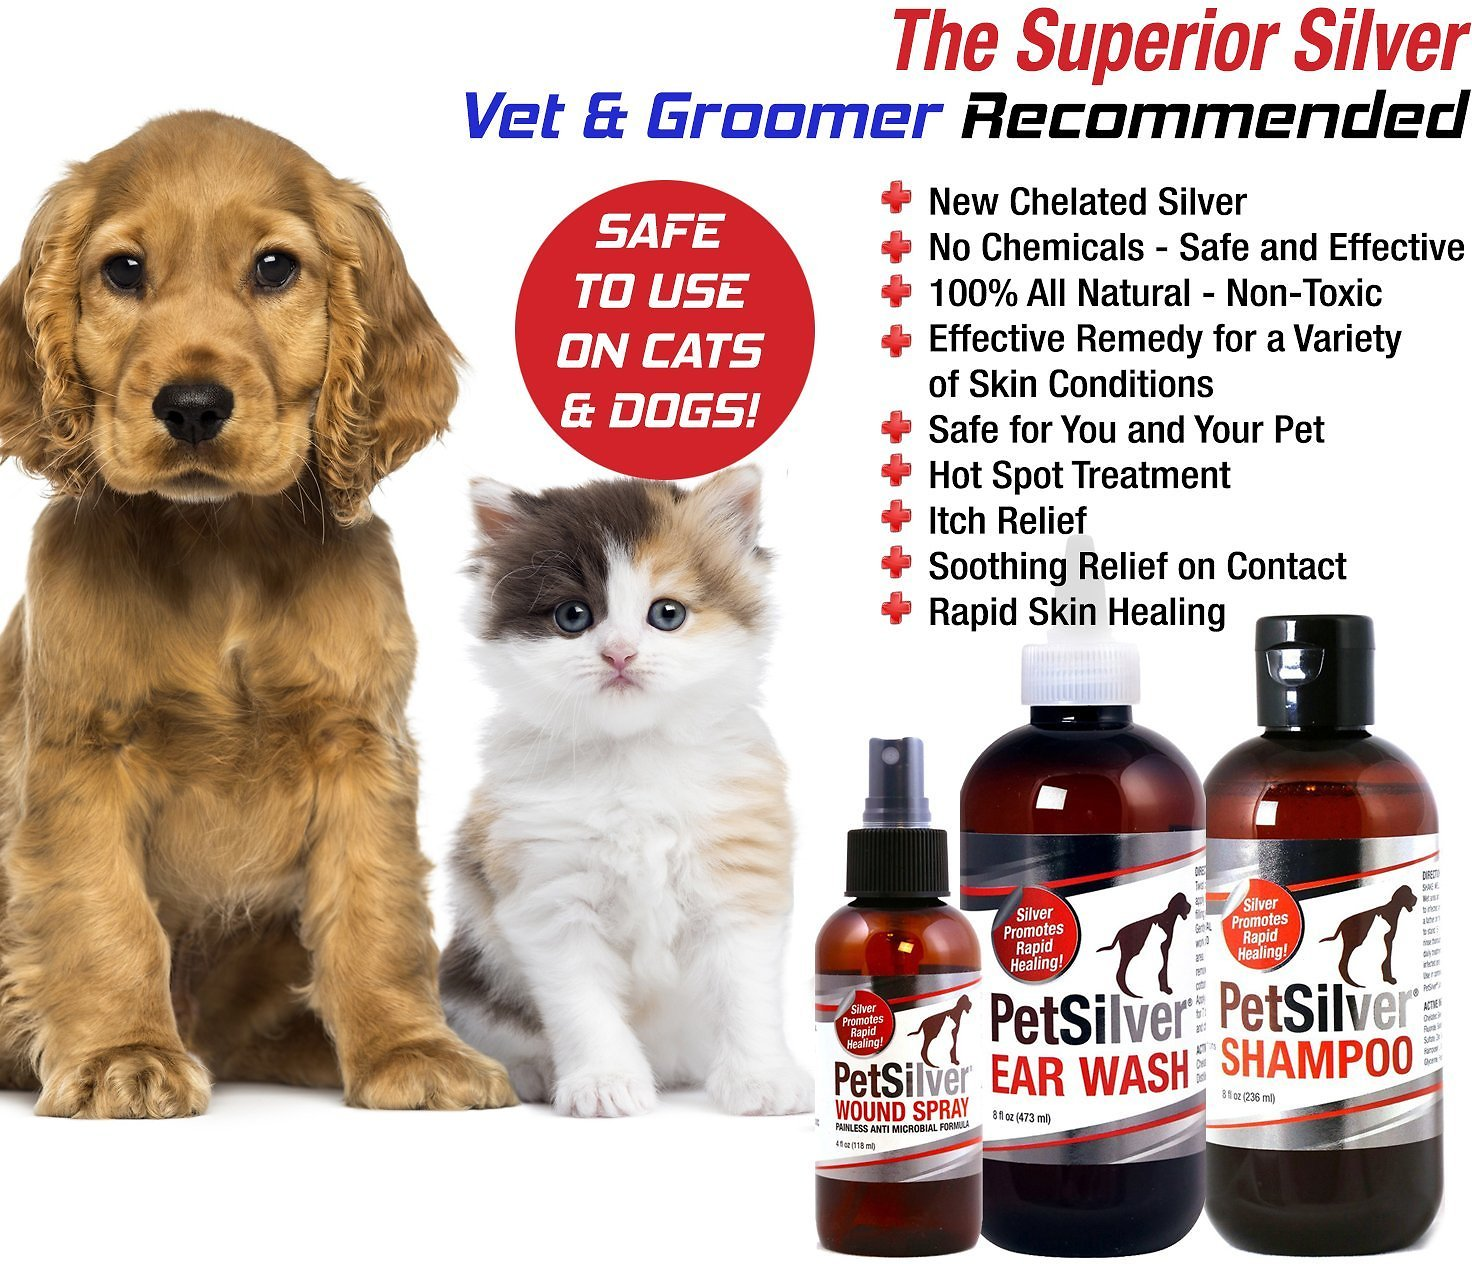 Petsilver Painless Antimicrobial Dog Cat Wound Spray  Oz Bottle